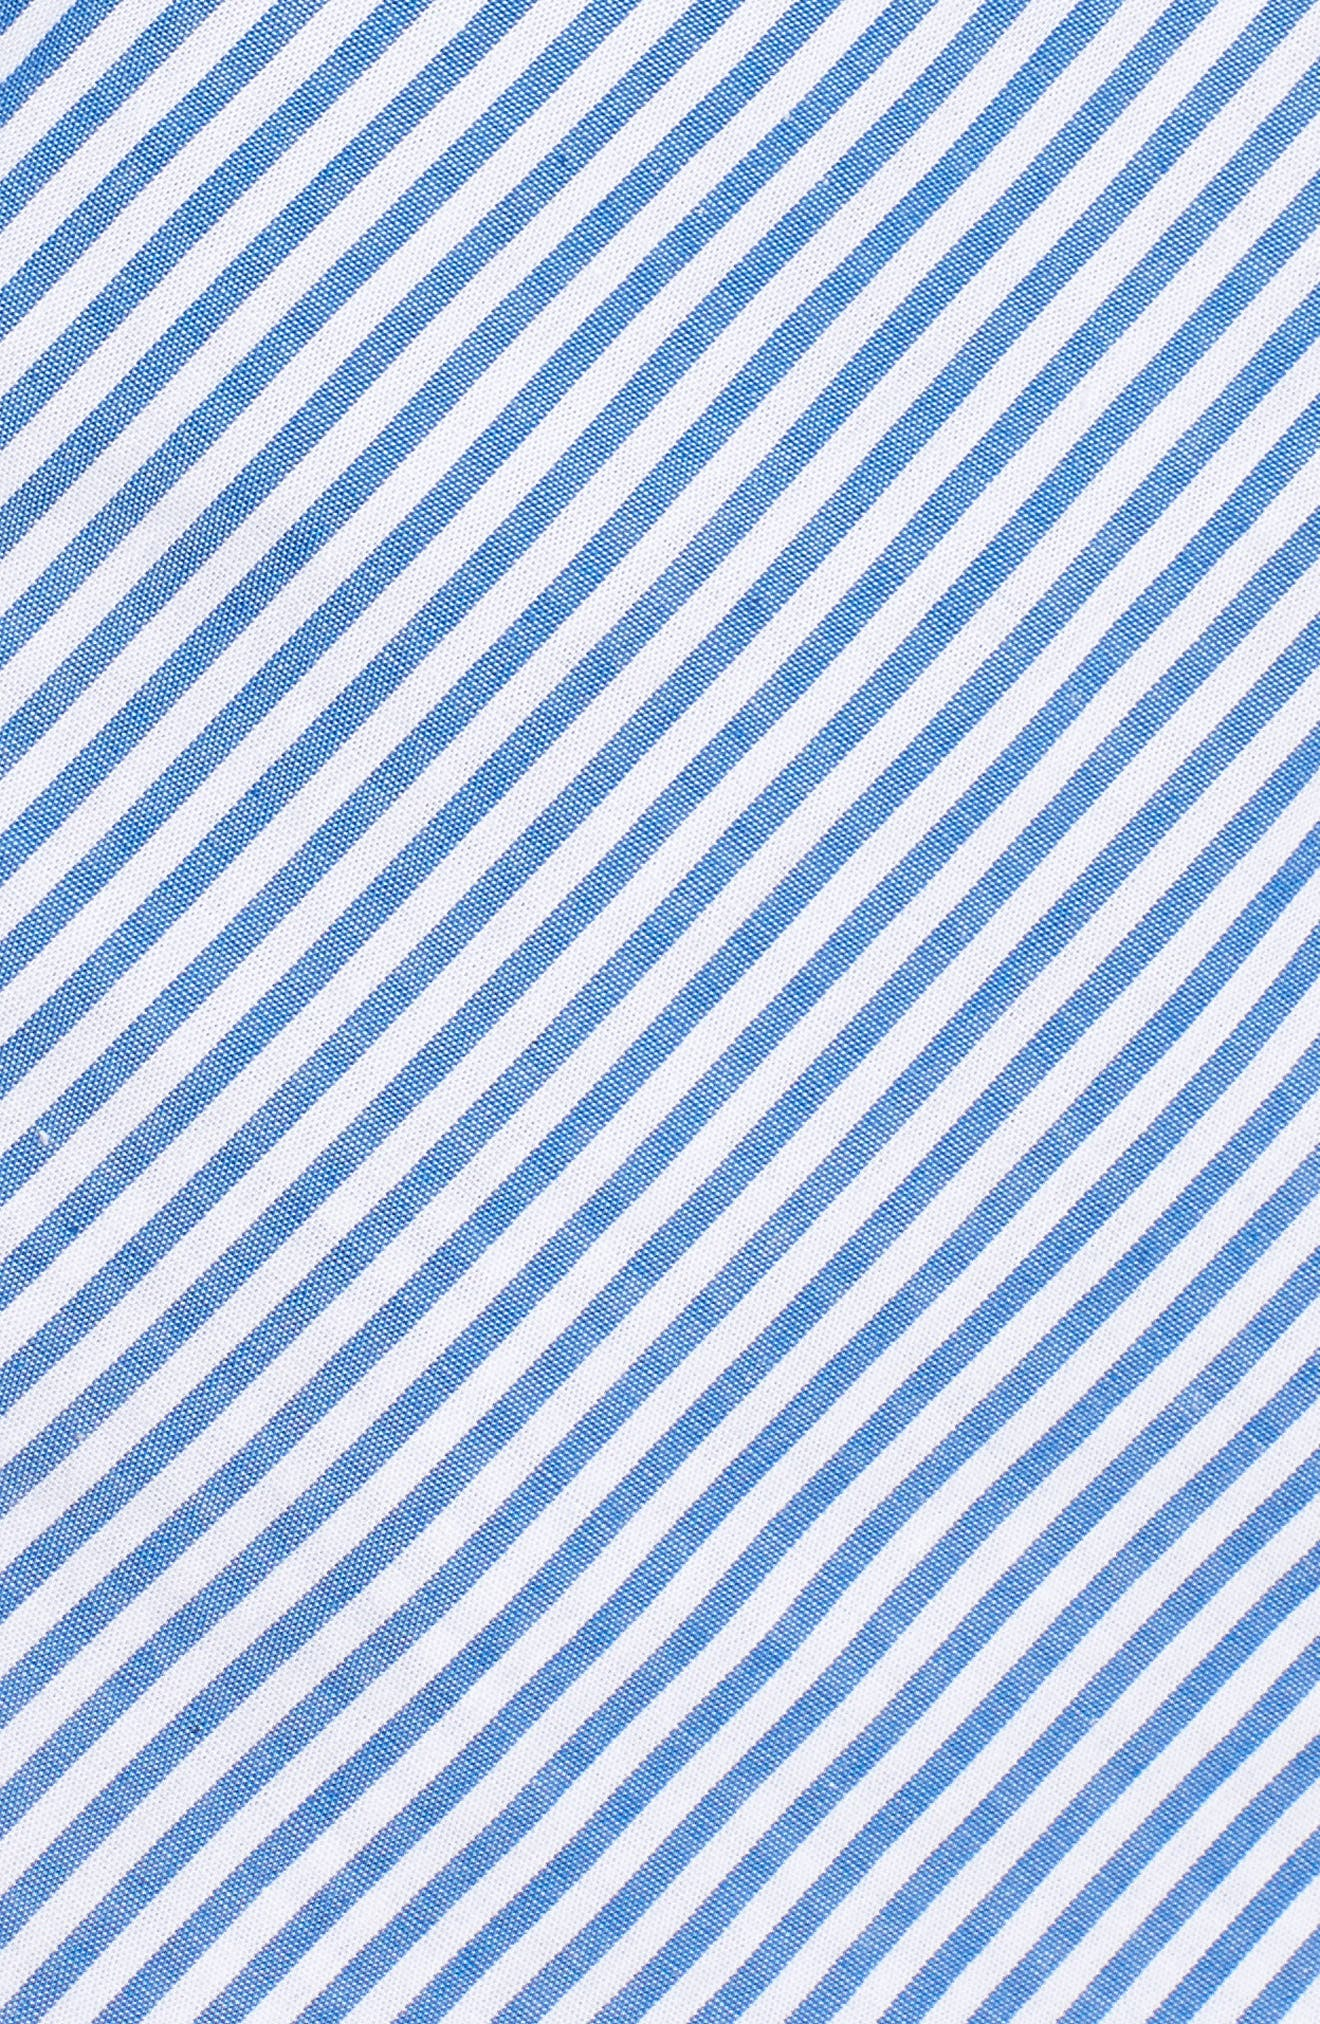 Stripe Wrap Top,                             Alternate thumbnail 6, color,                             Blue/ White